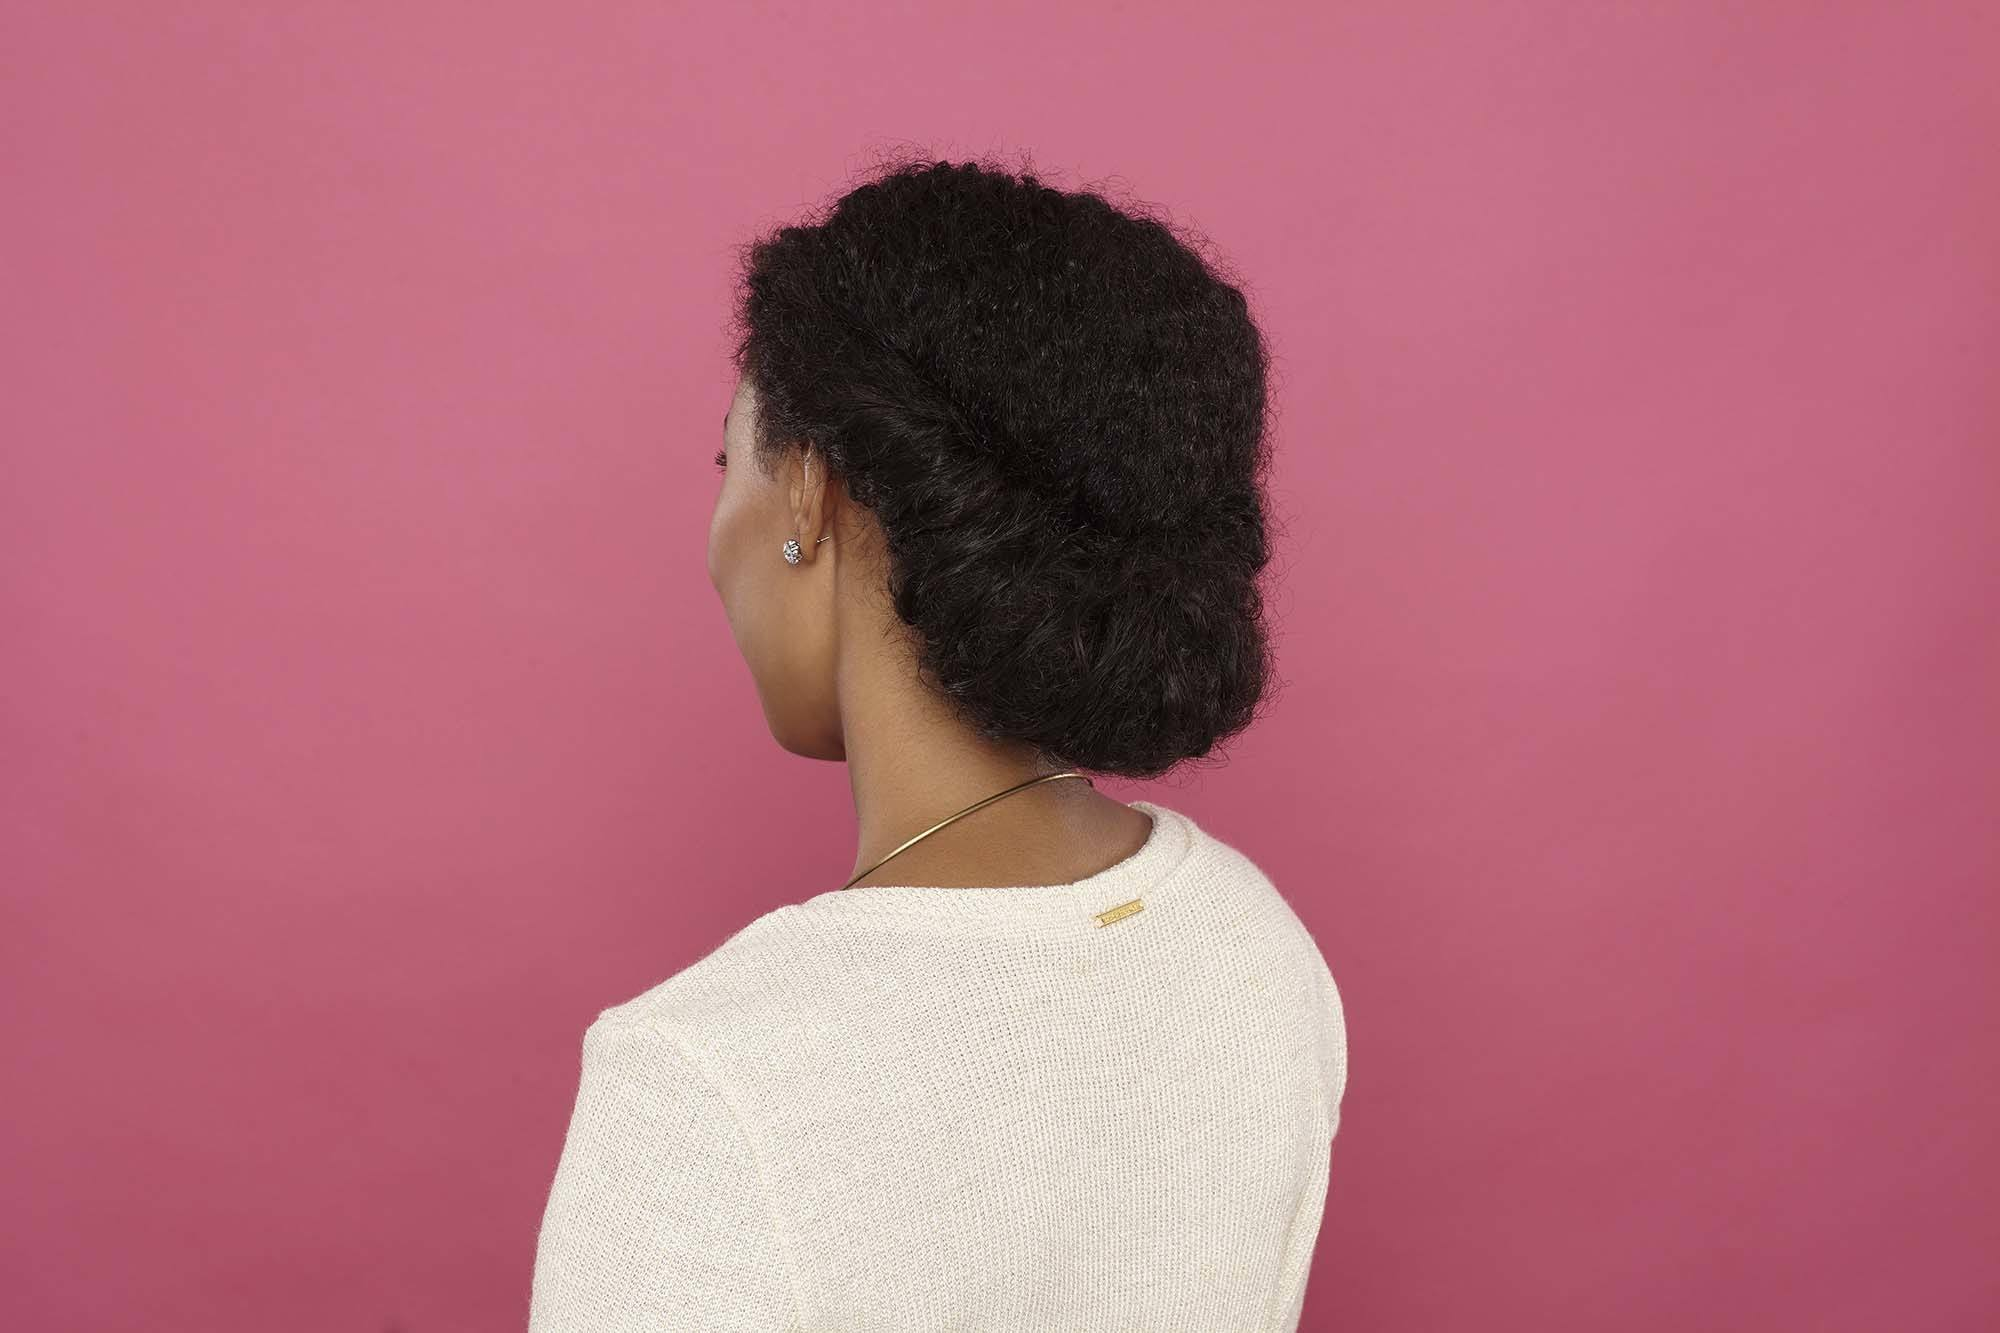 hairstyles for black women: close up shot of a woman with natural, chocolate brown hair styled into a low rolled updo, wearing white and posing in a studio setting